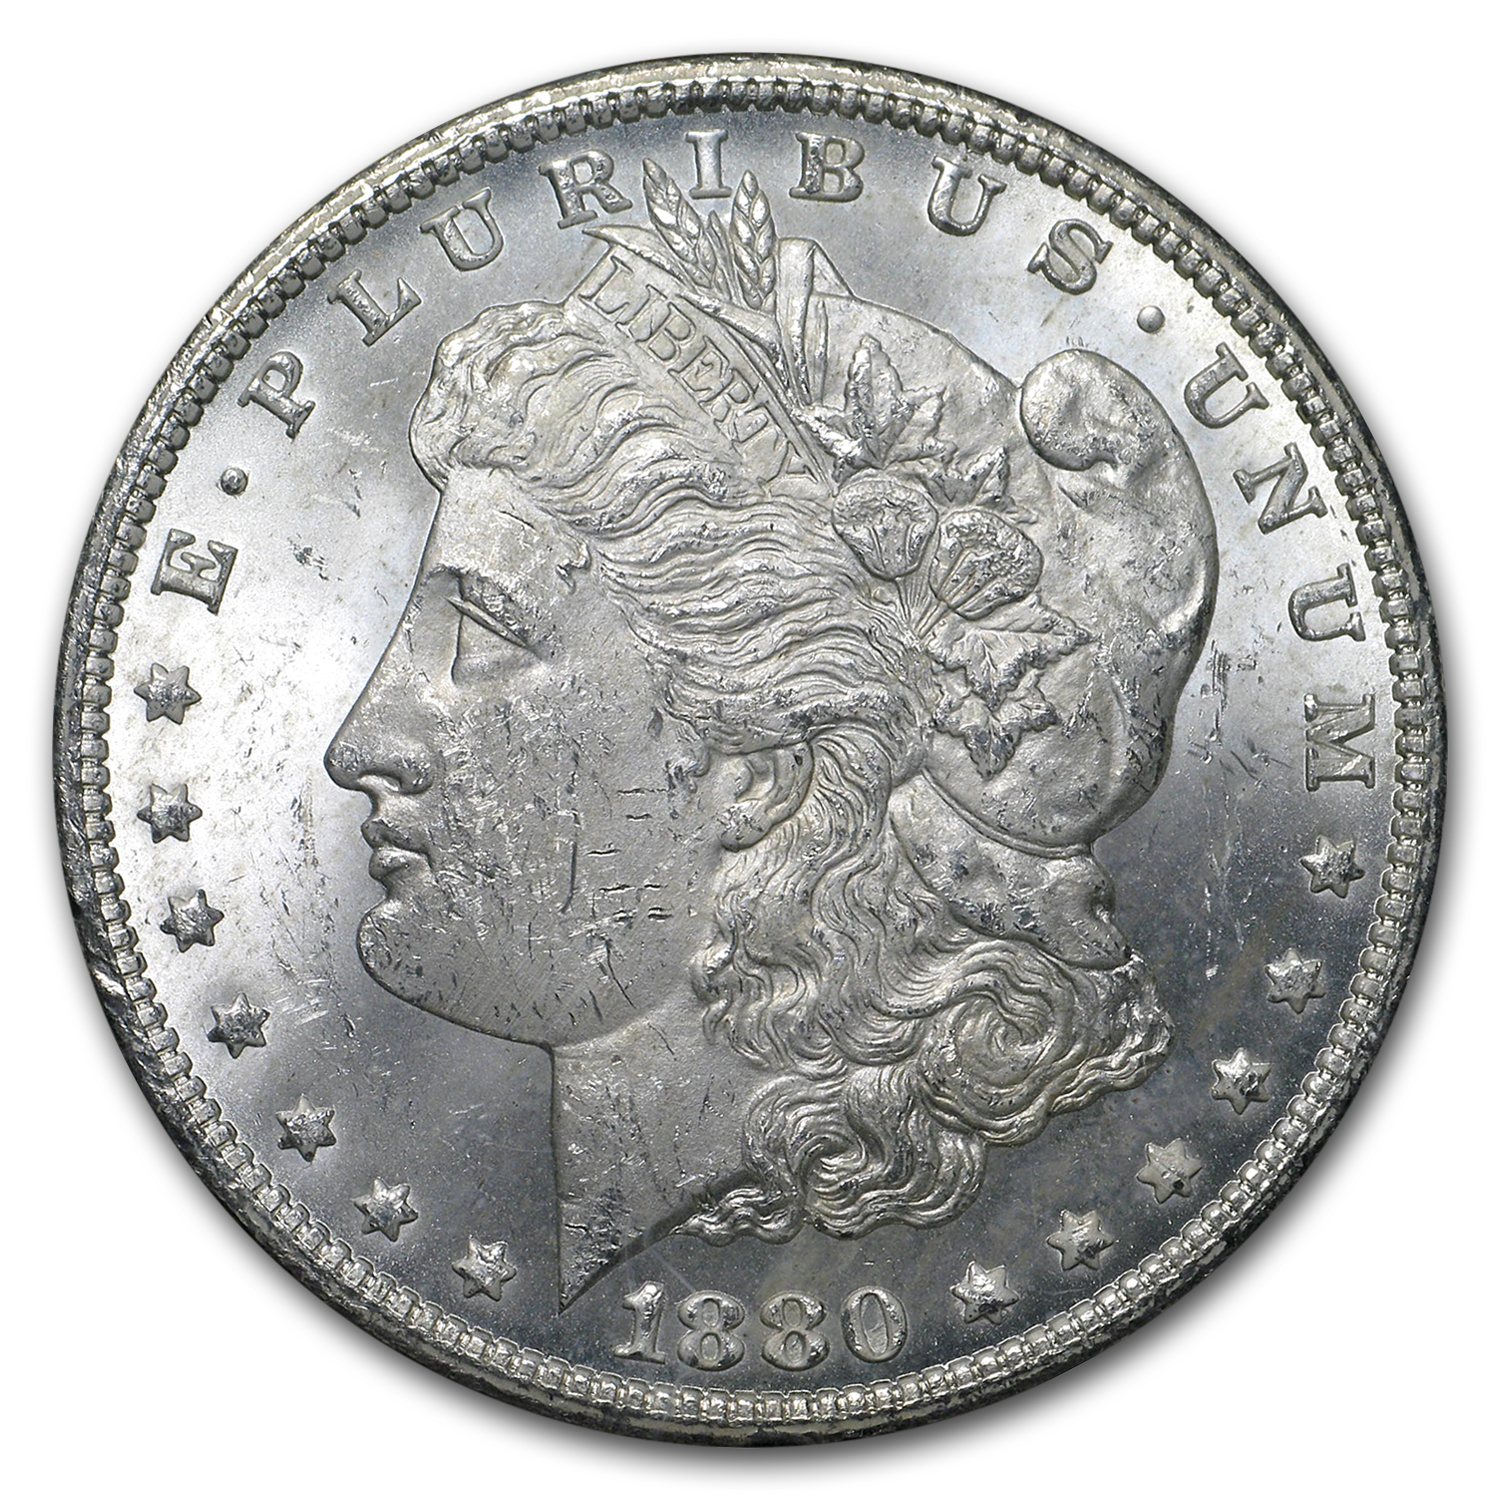 1880-CC Morgan Dollar Rev of 1878 BU (GSA)